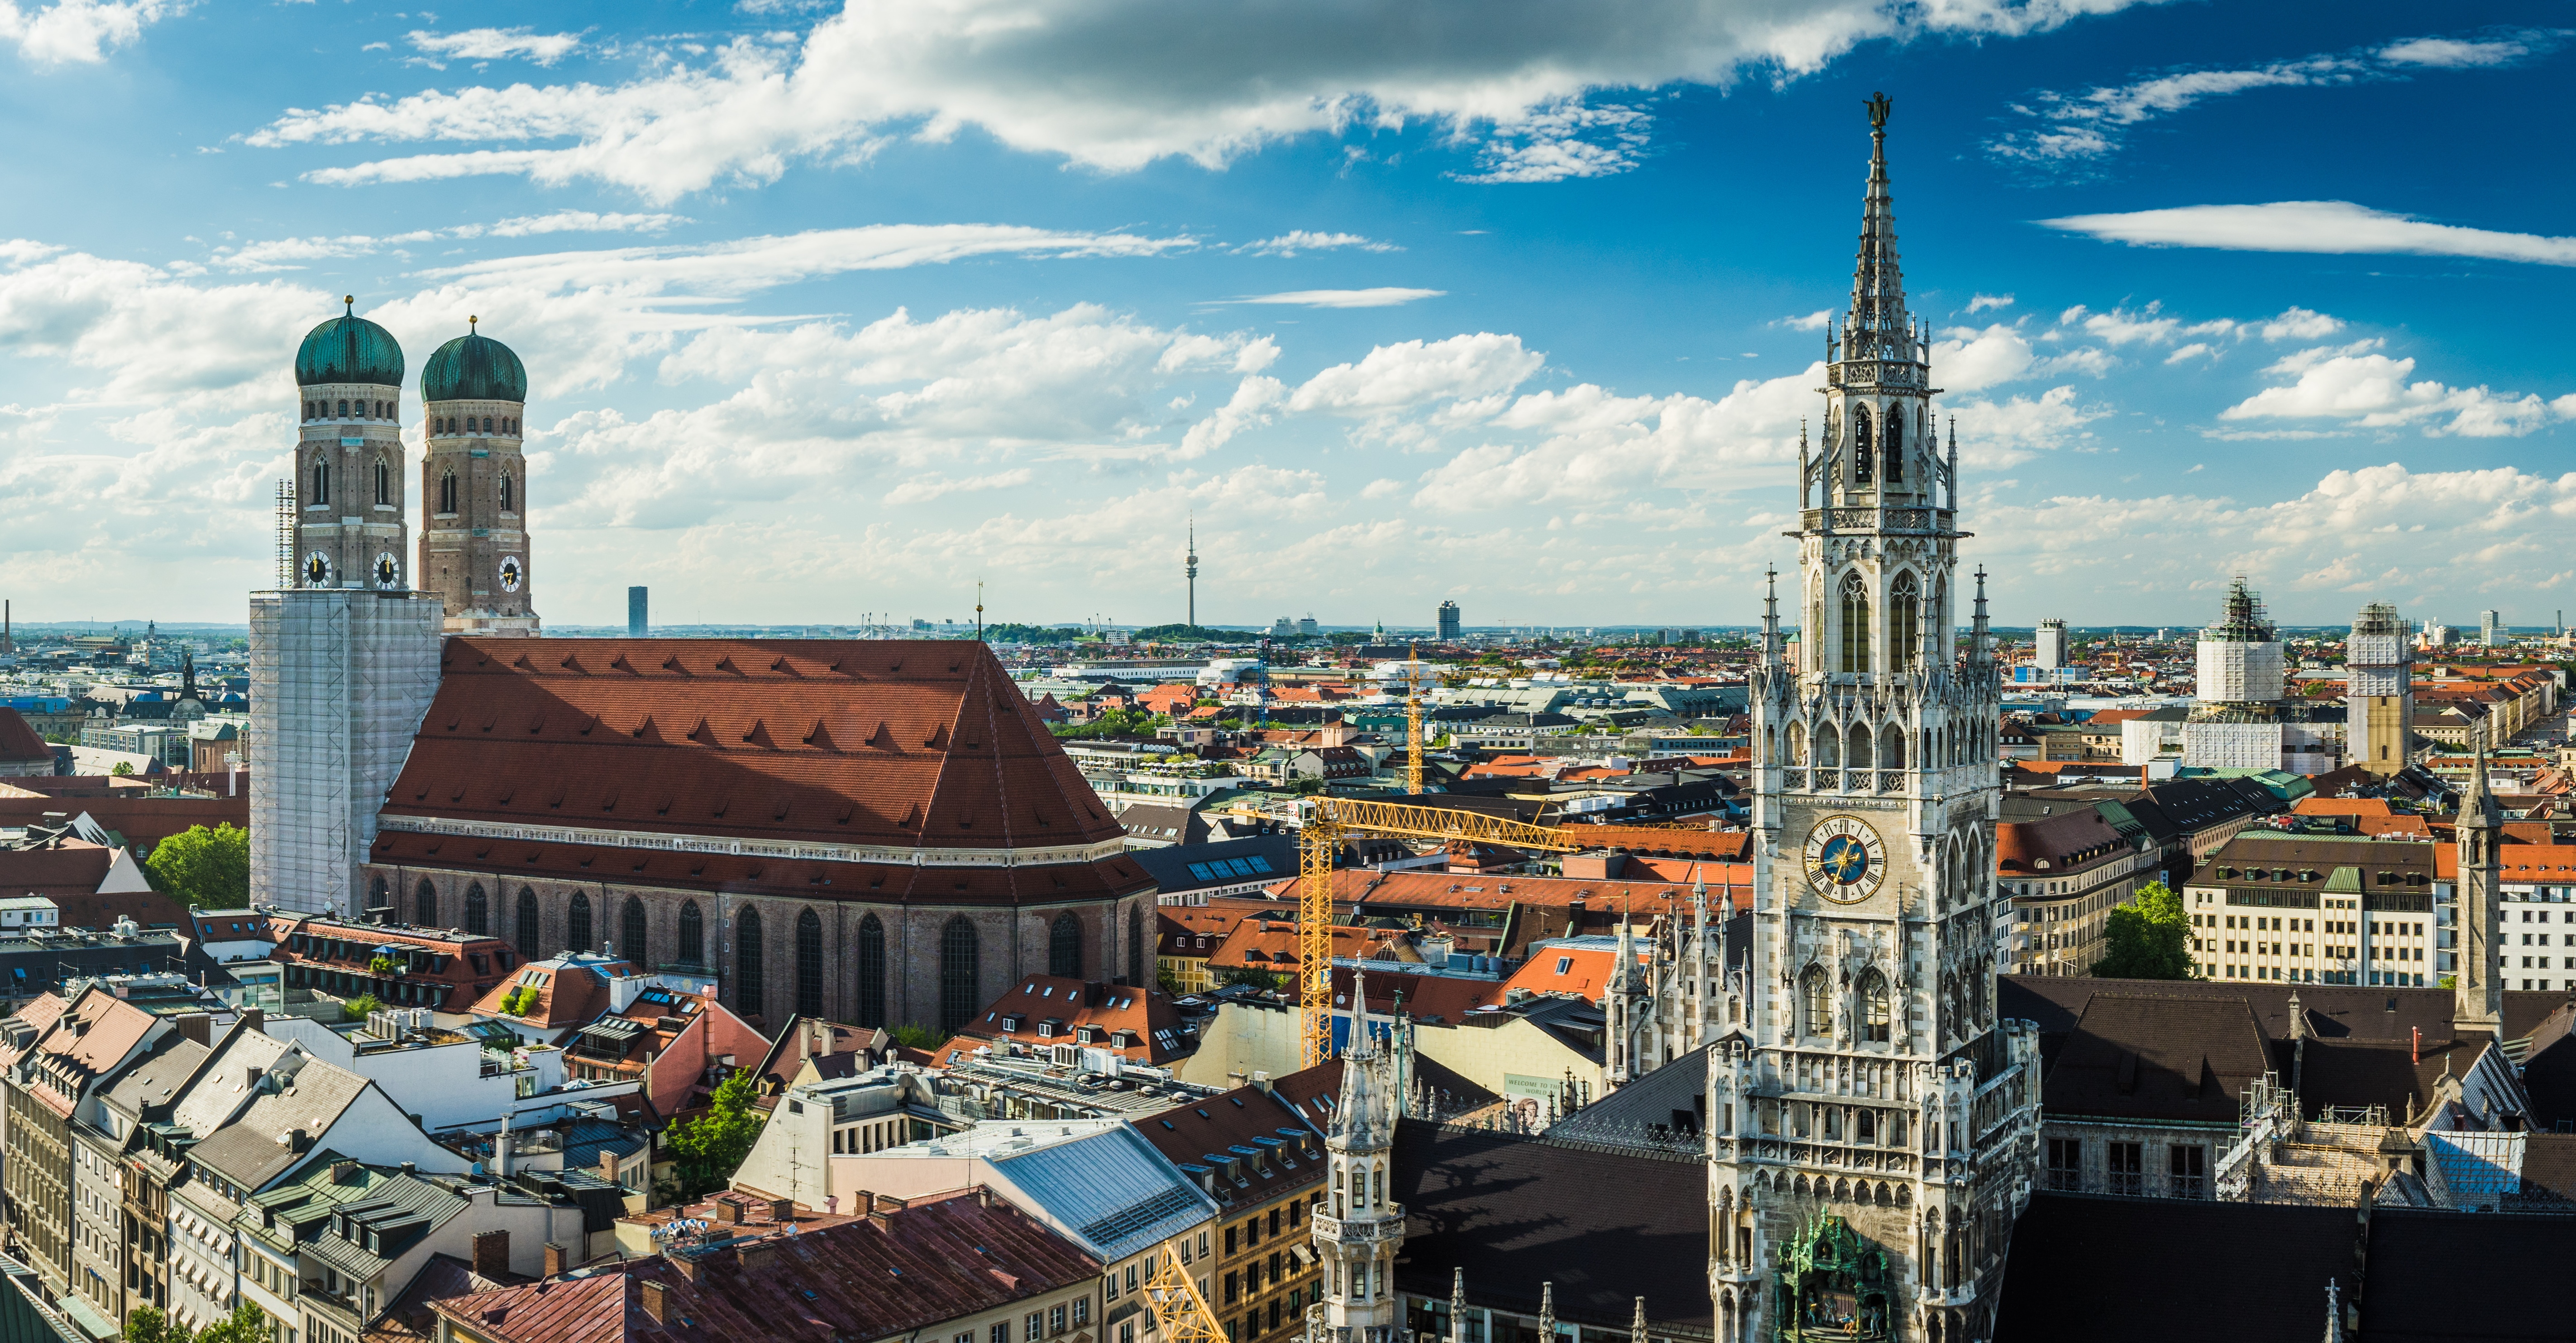 View over roofs in Munich. Churches, red roof tiles.